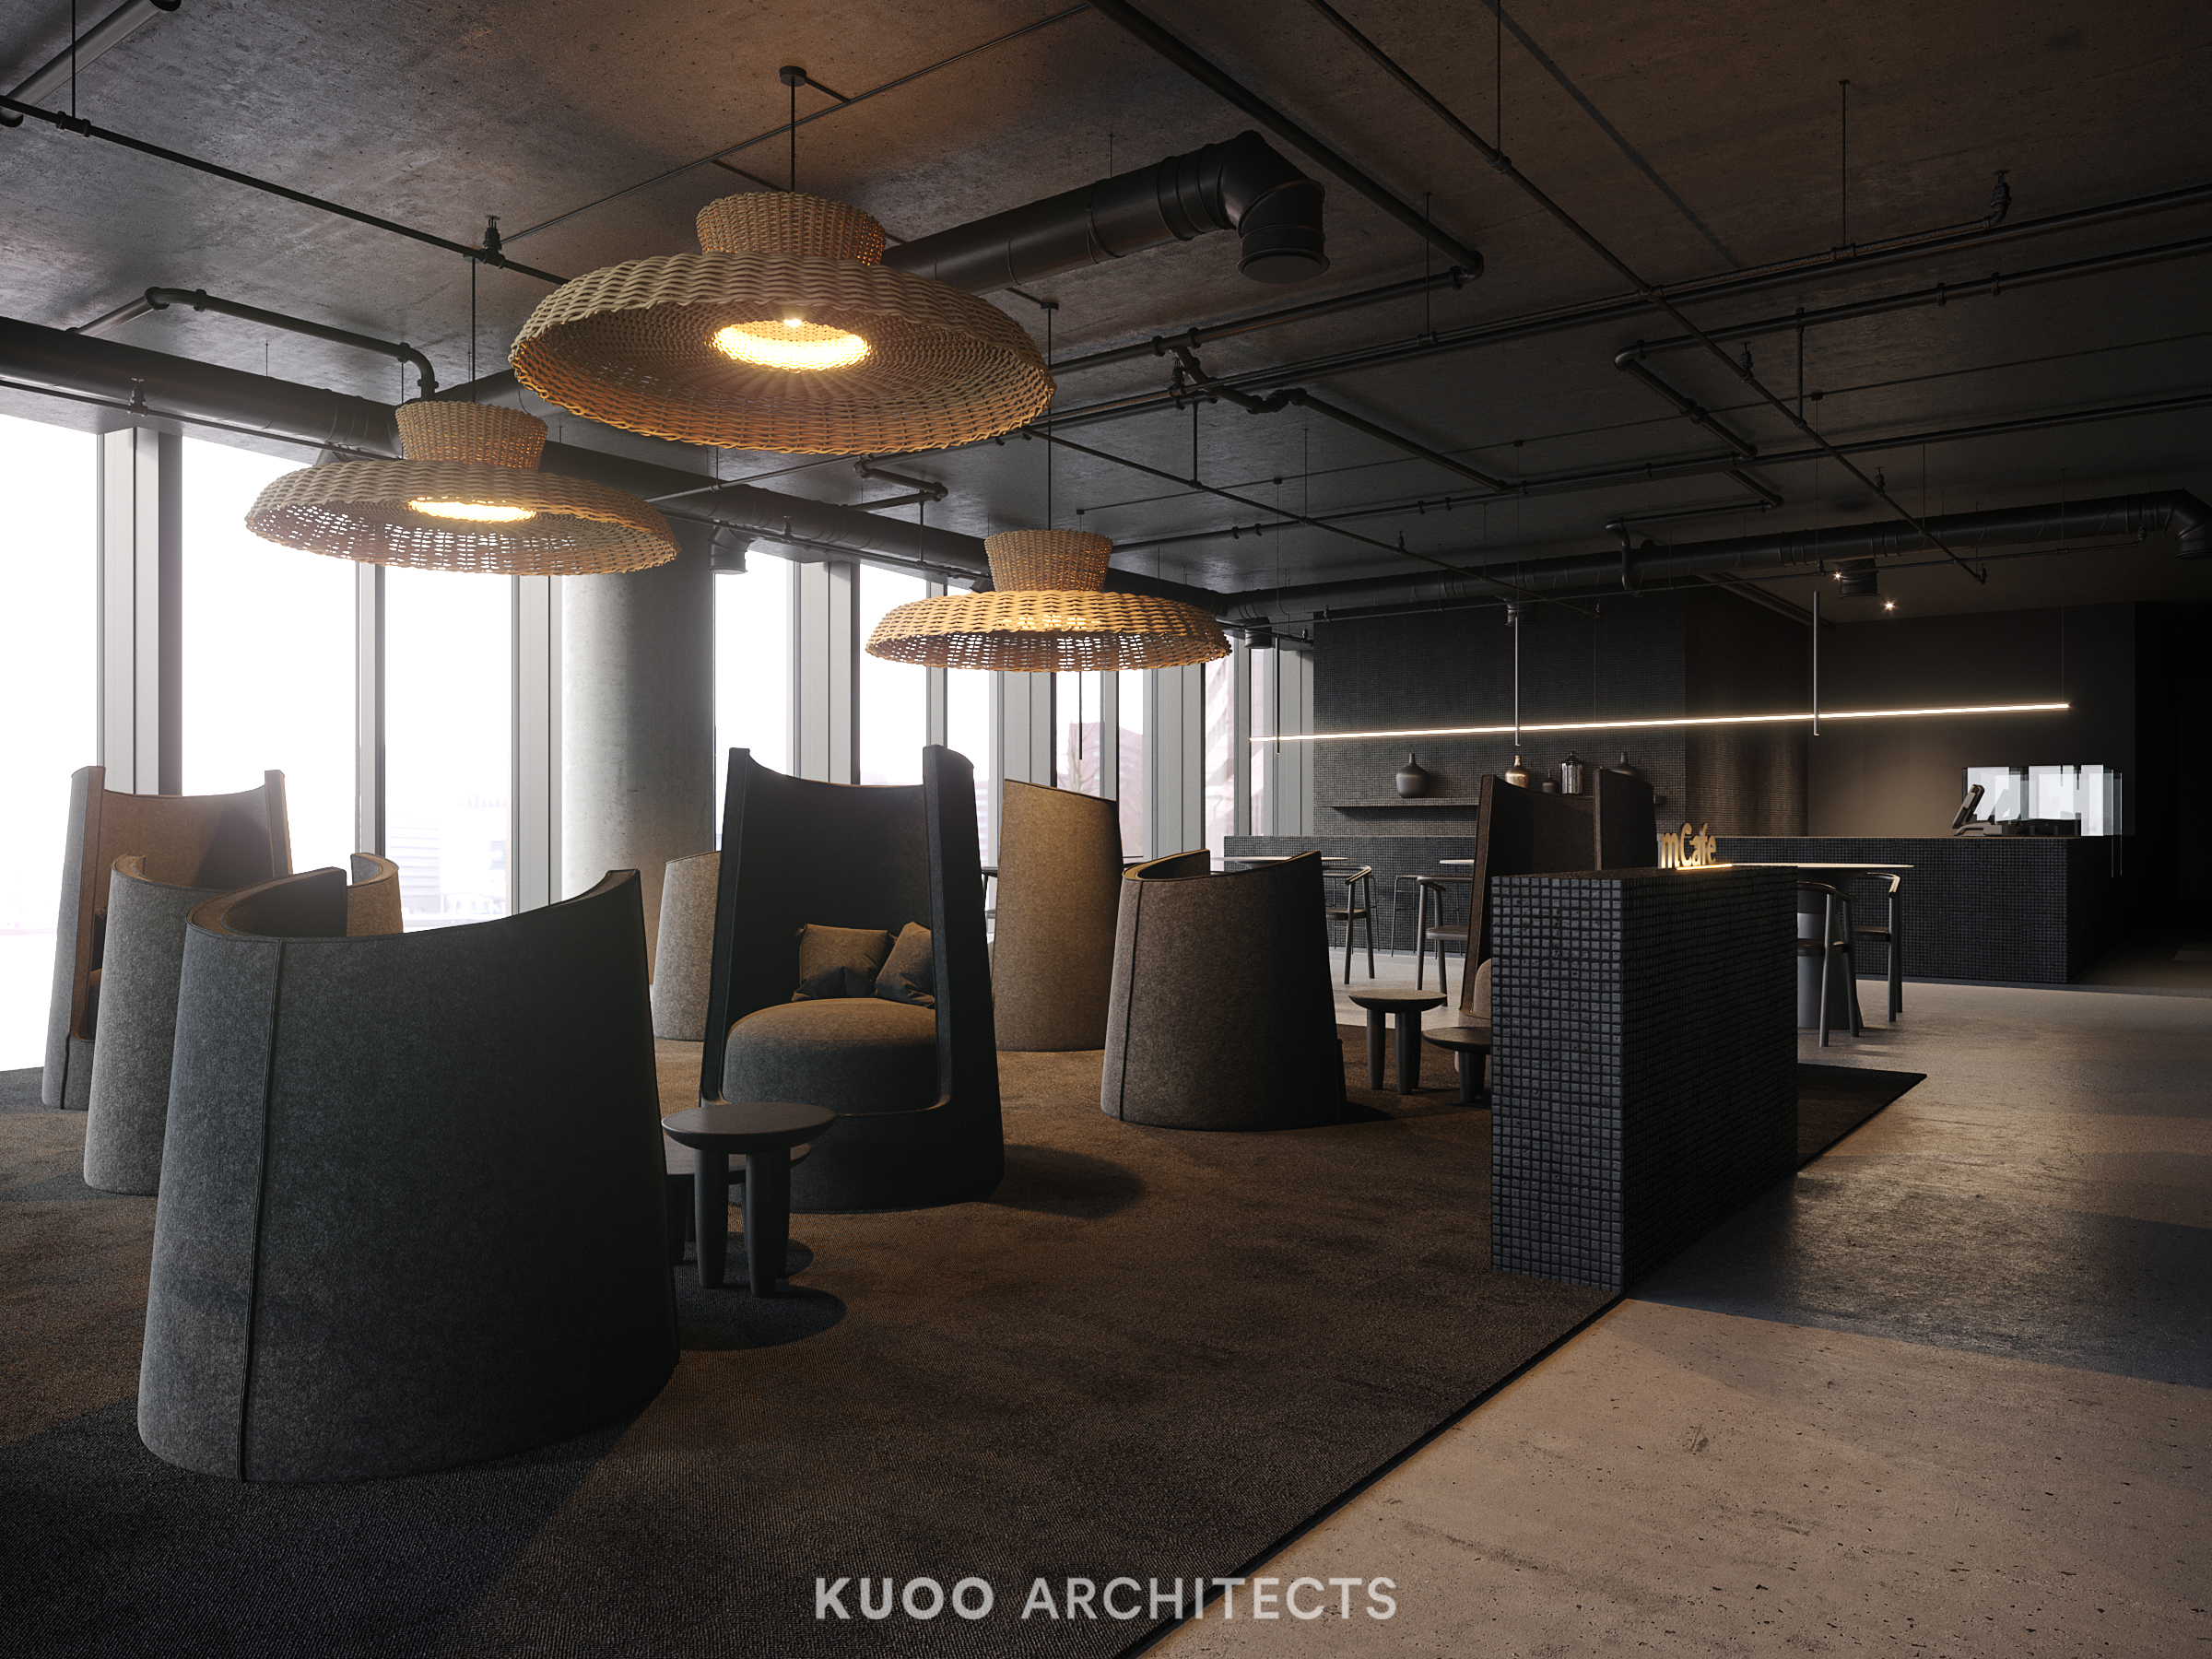 kuoo_architects_mcafe_2